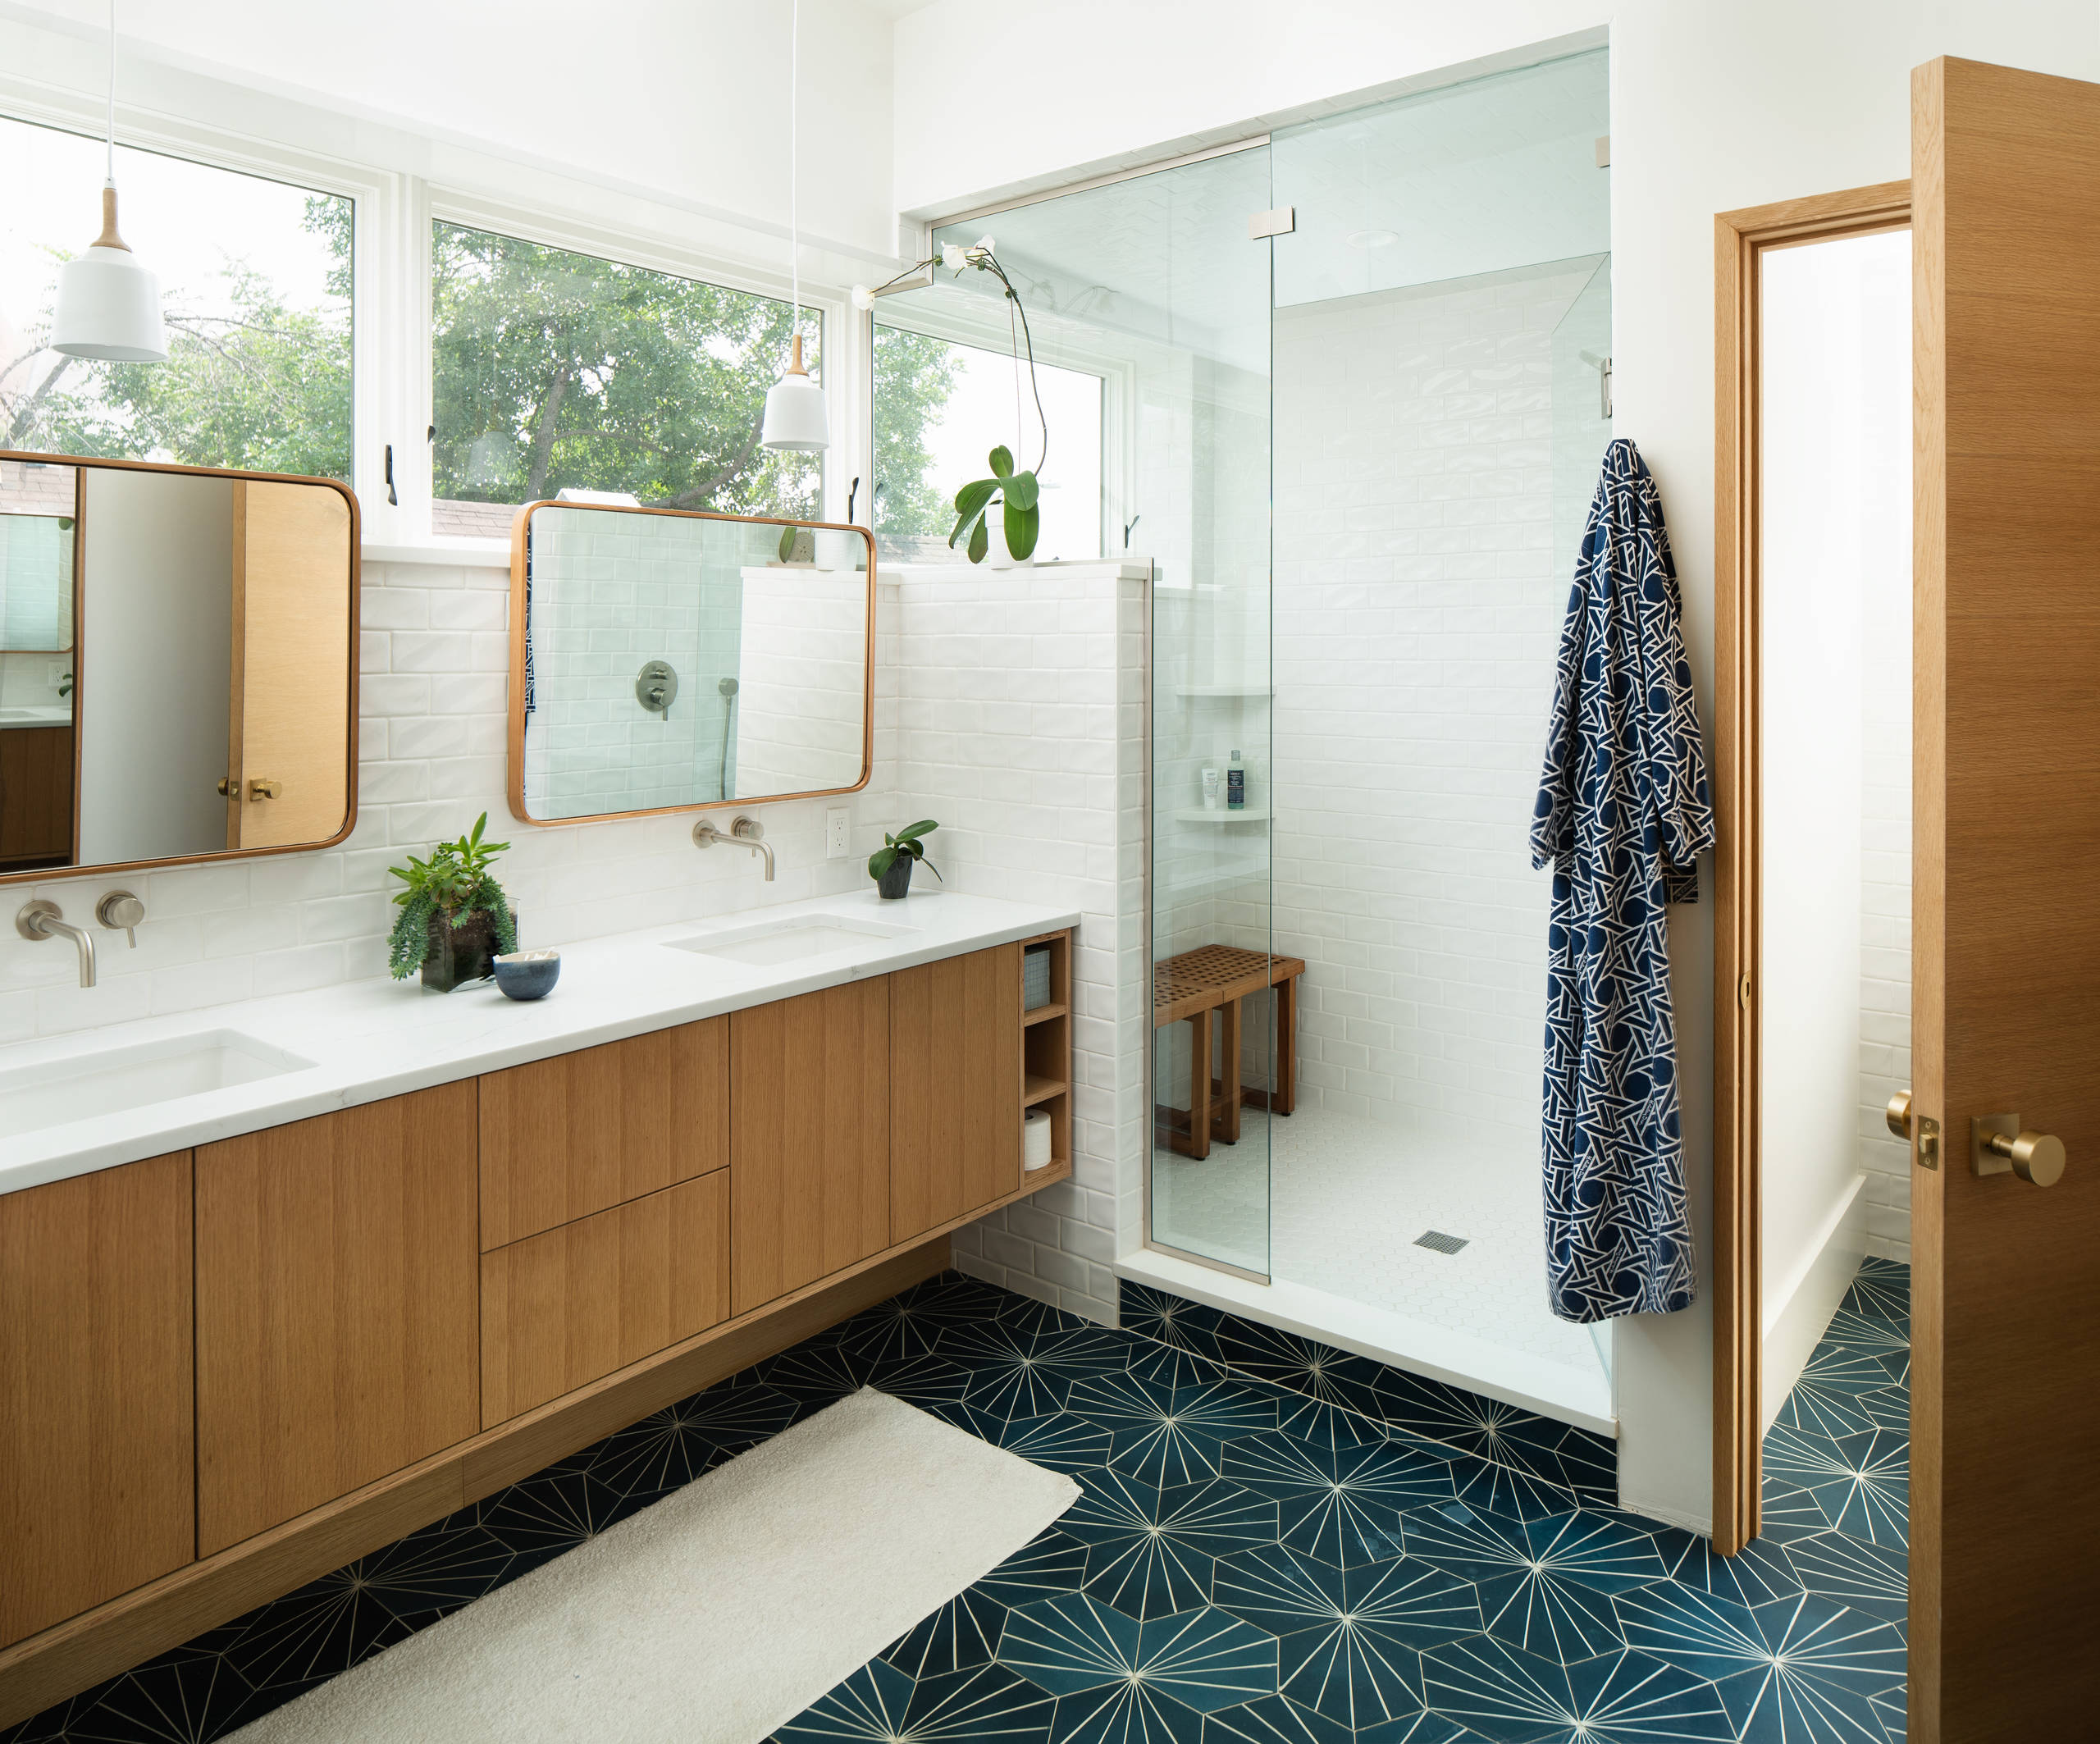 75 Beautiful Mid Century Modern Bathroom Pictures Ideas November 2020 Houzz